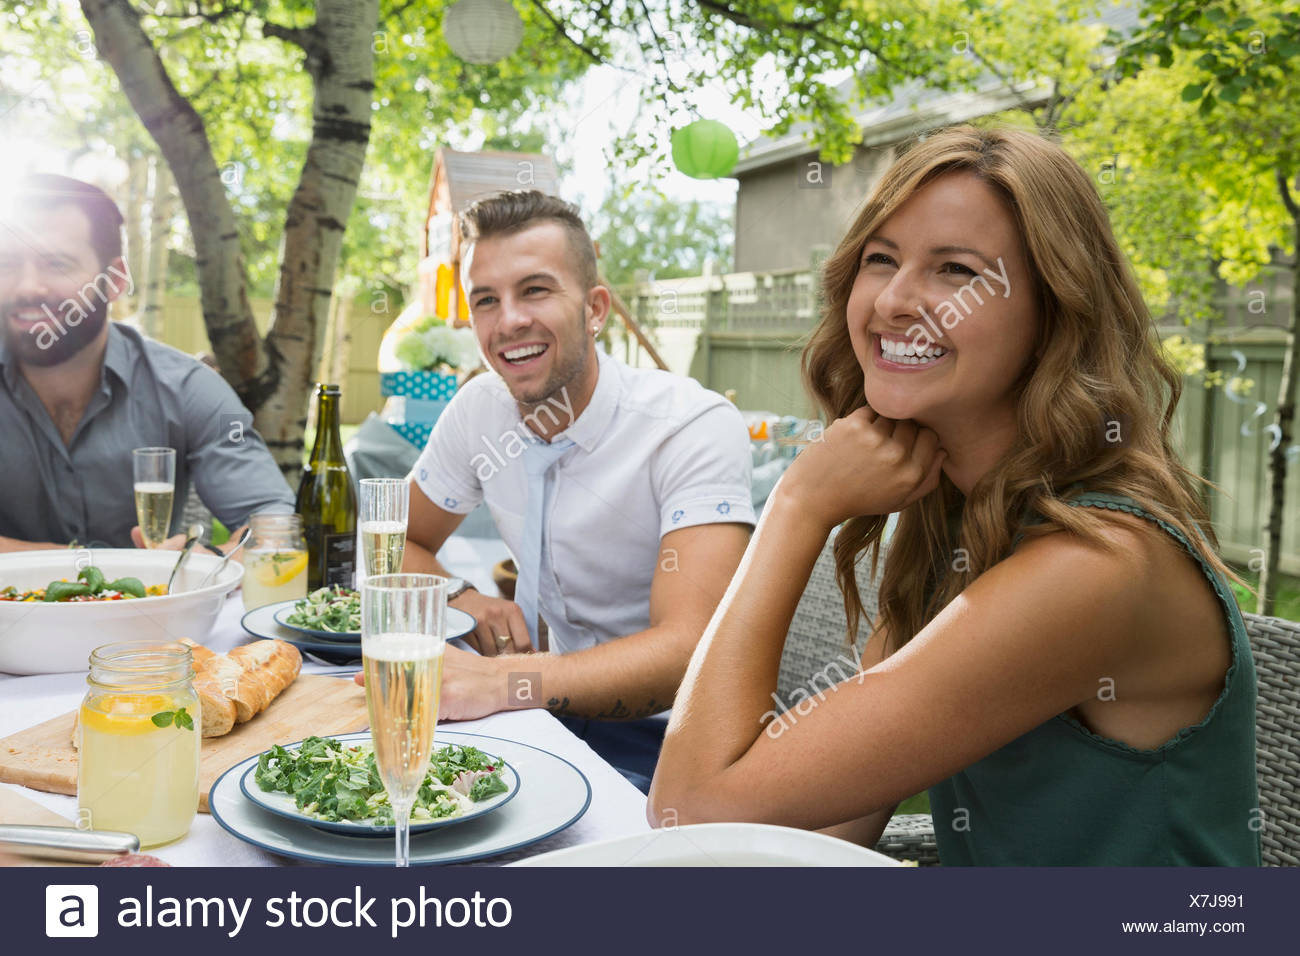 Smiling friends enjoying garden party lunch - Stock Image